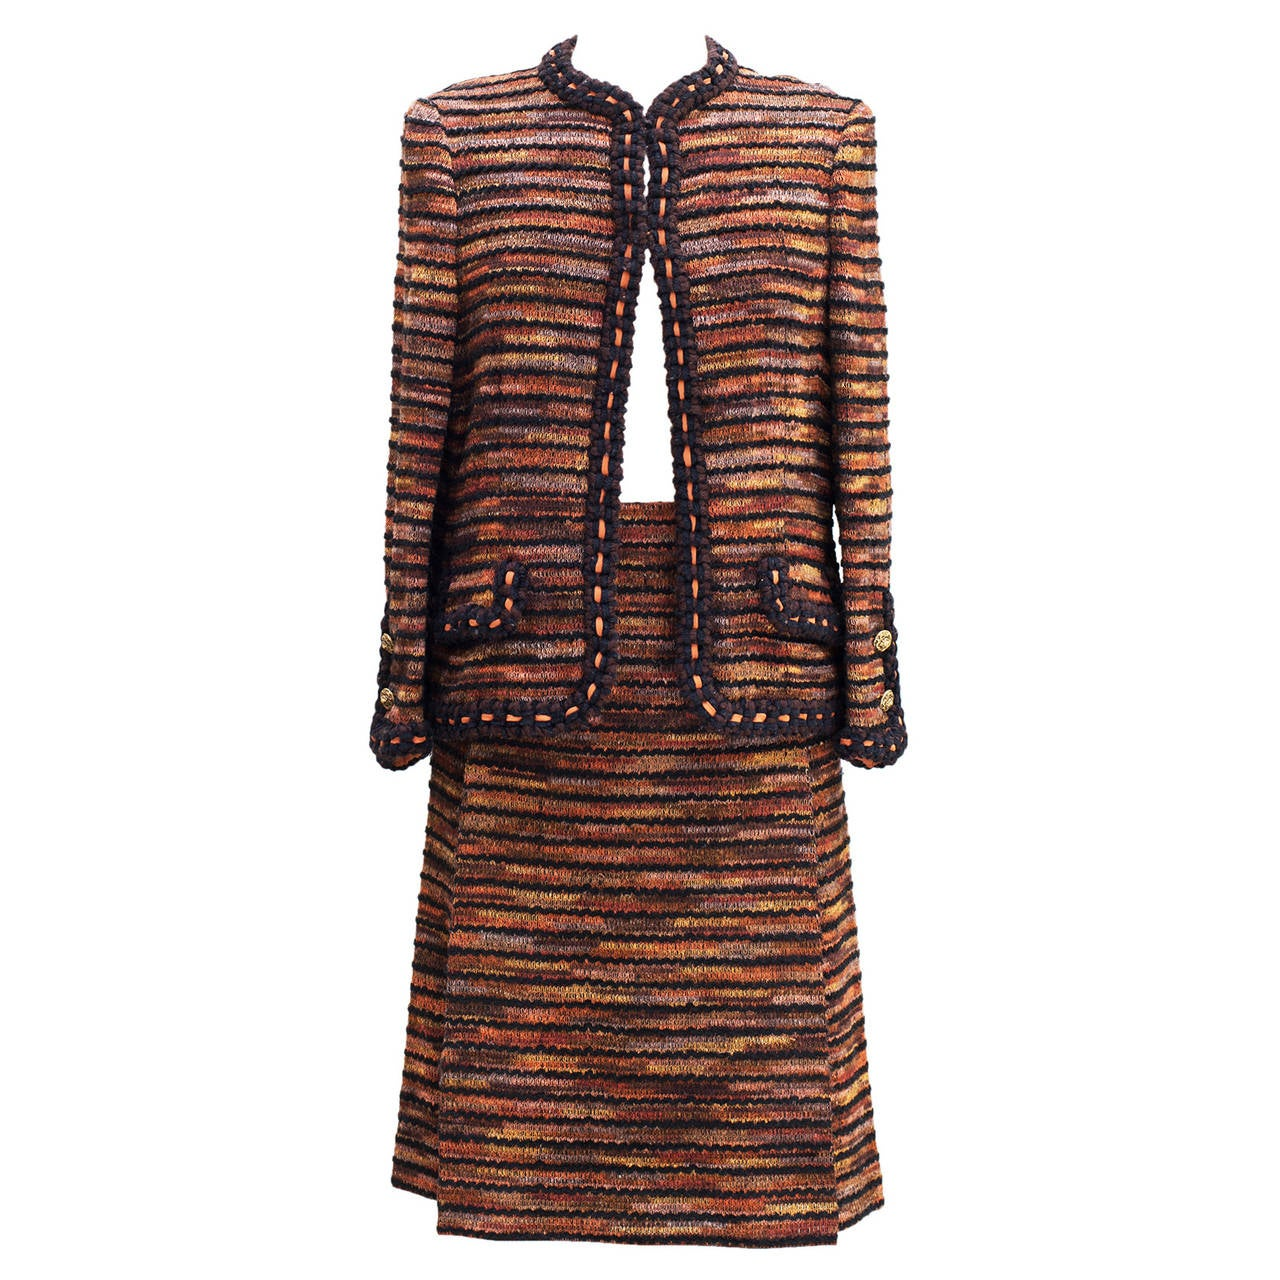 Chanel Haute-Couture  1960 -1970 Vintage Tweed Suit For Sale